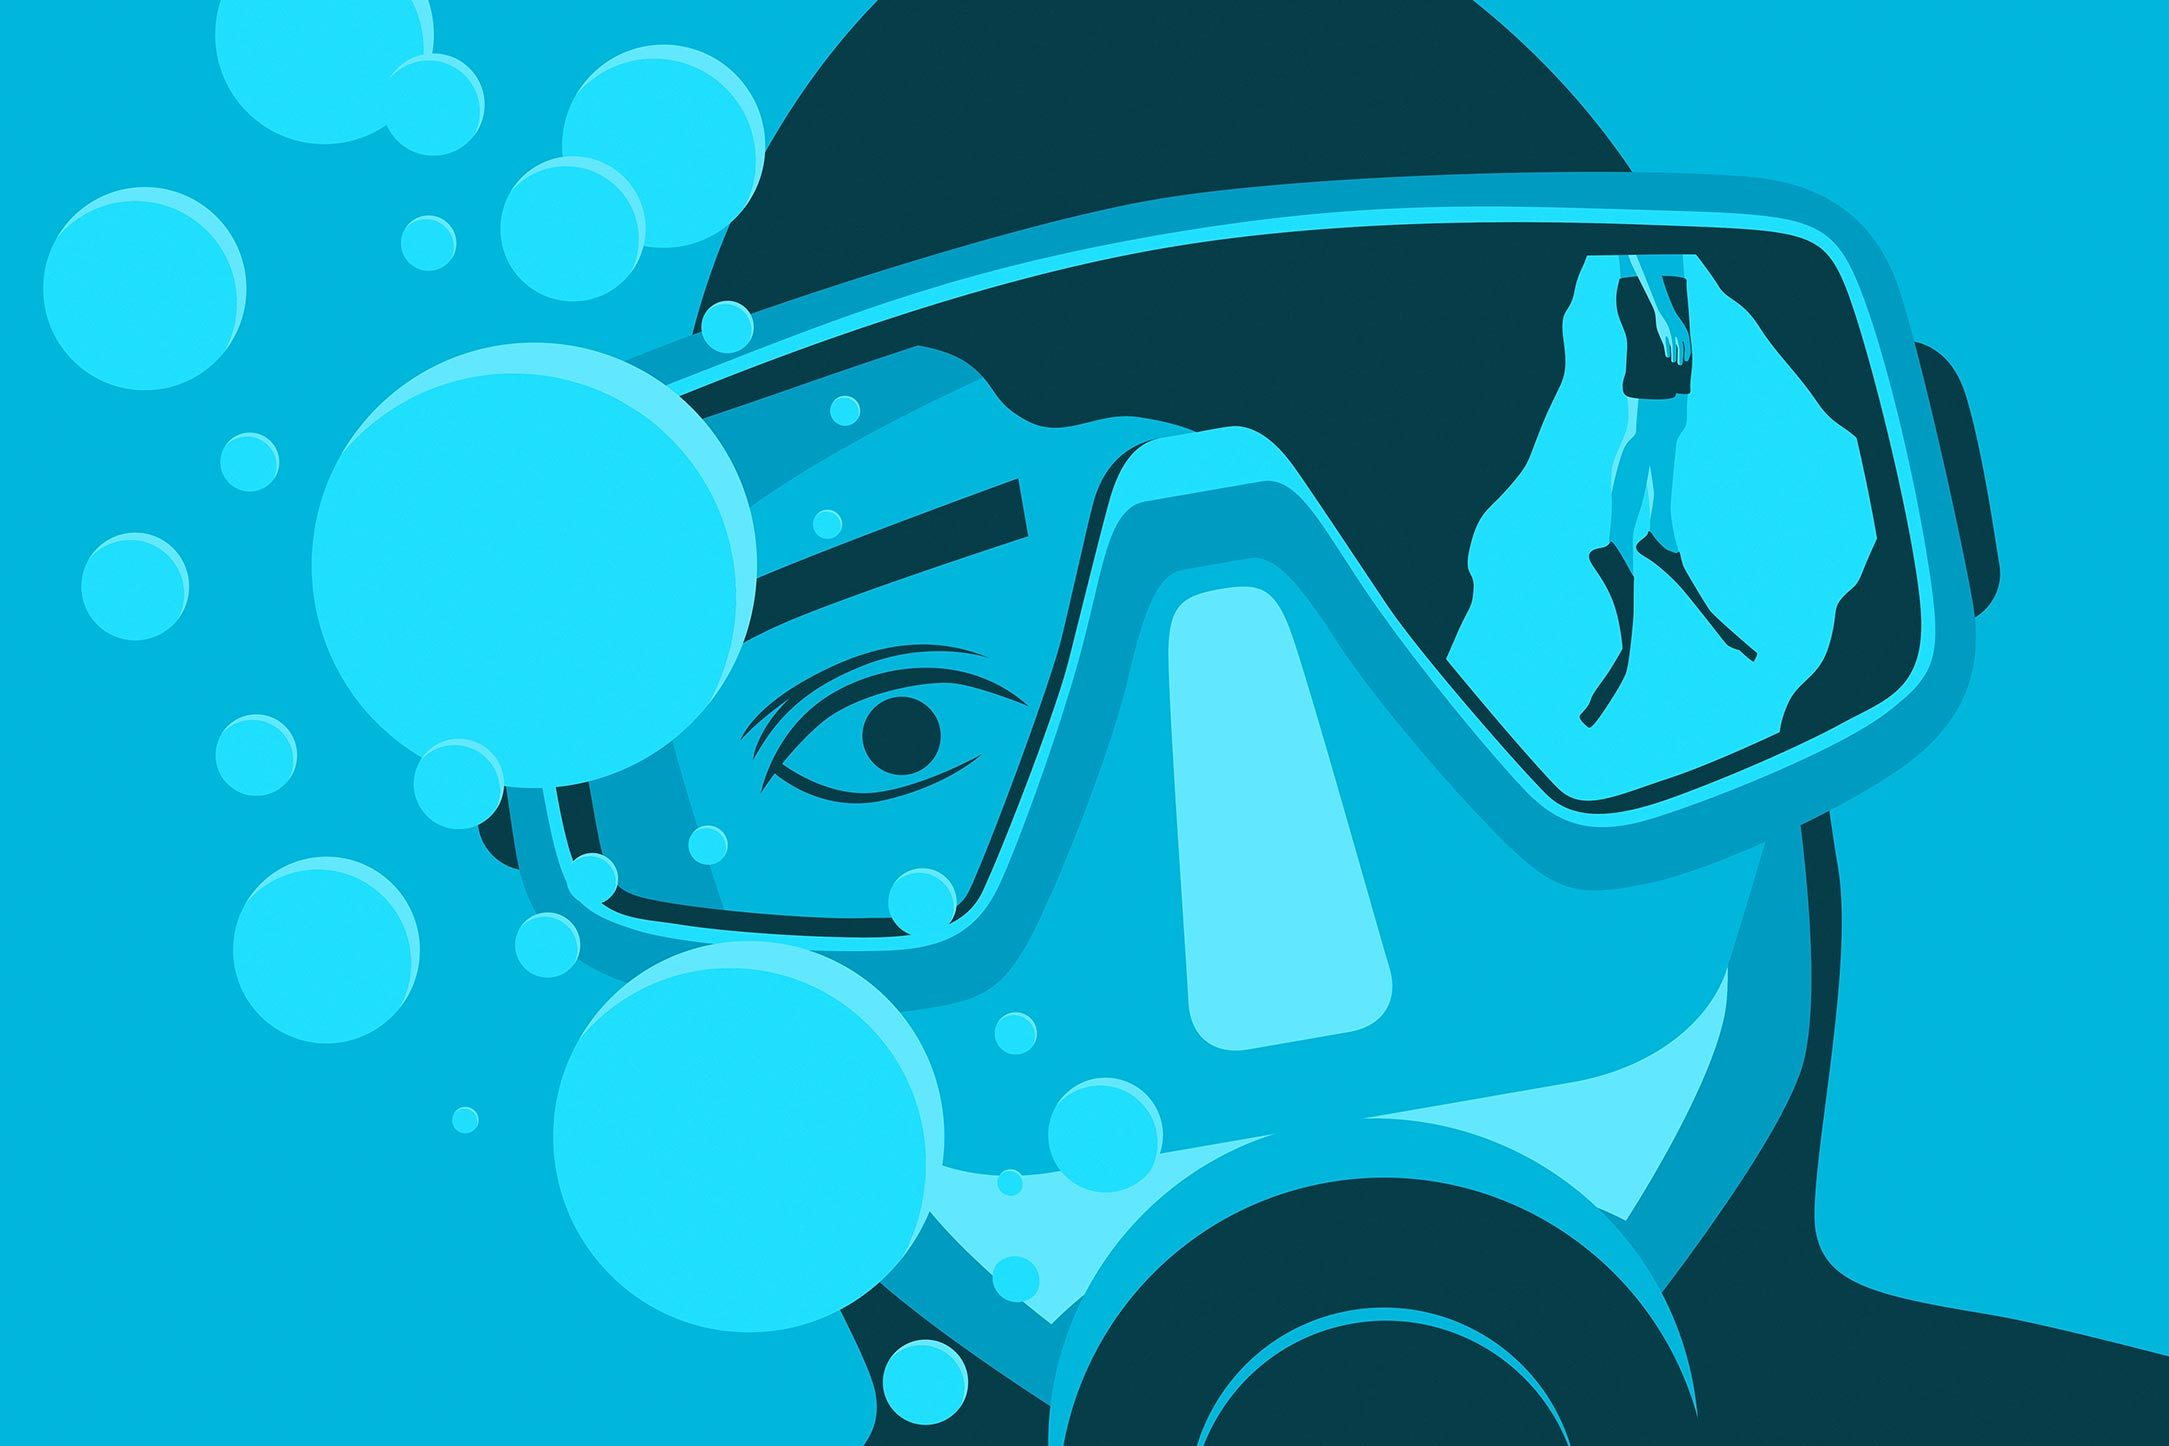 illustration of a diver's mask with another diver seen in the reflection